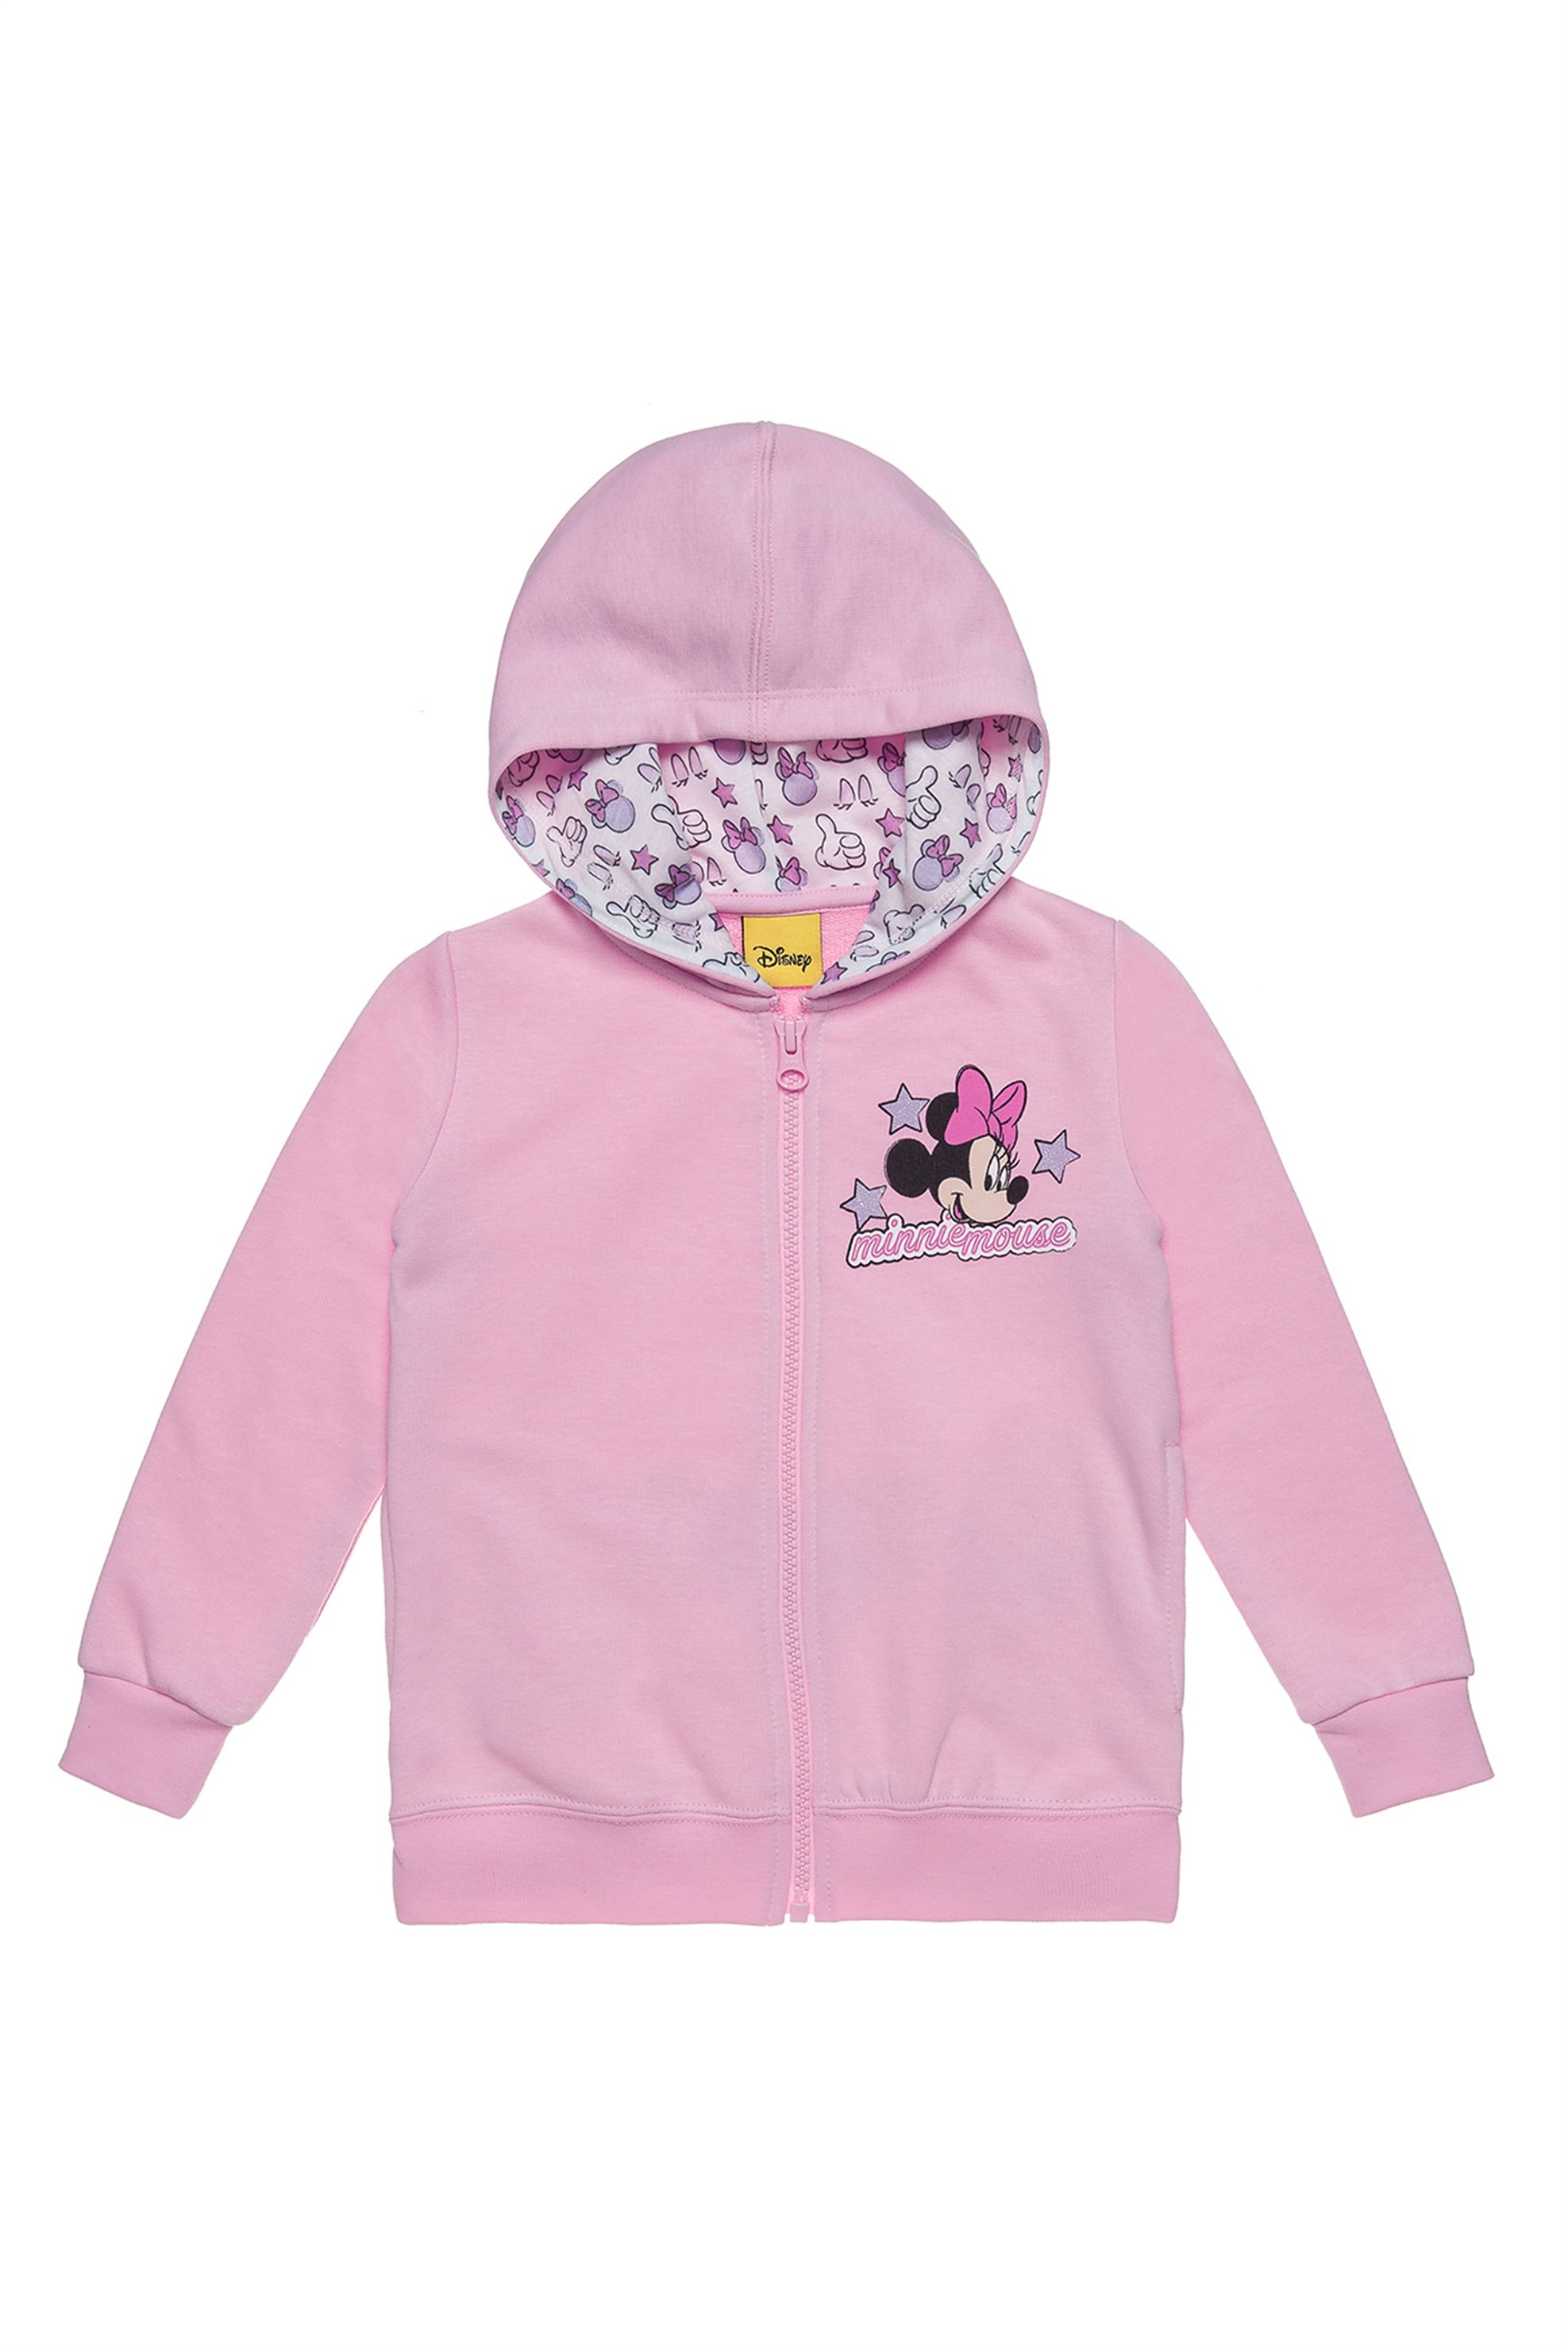 Notos Alouette παιδική ζακέτα με all over μοτίβο στην κουκούλα Disney  Minnie Mouse (12 μηνών- 61489c3a645